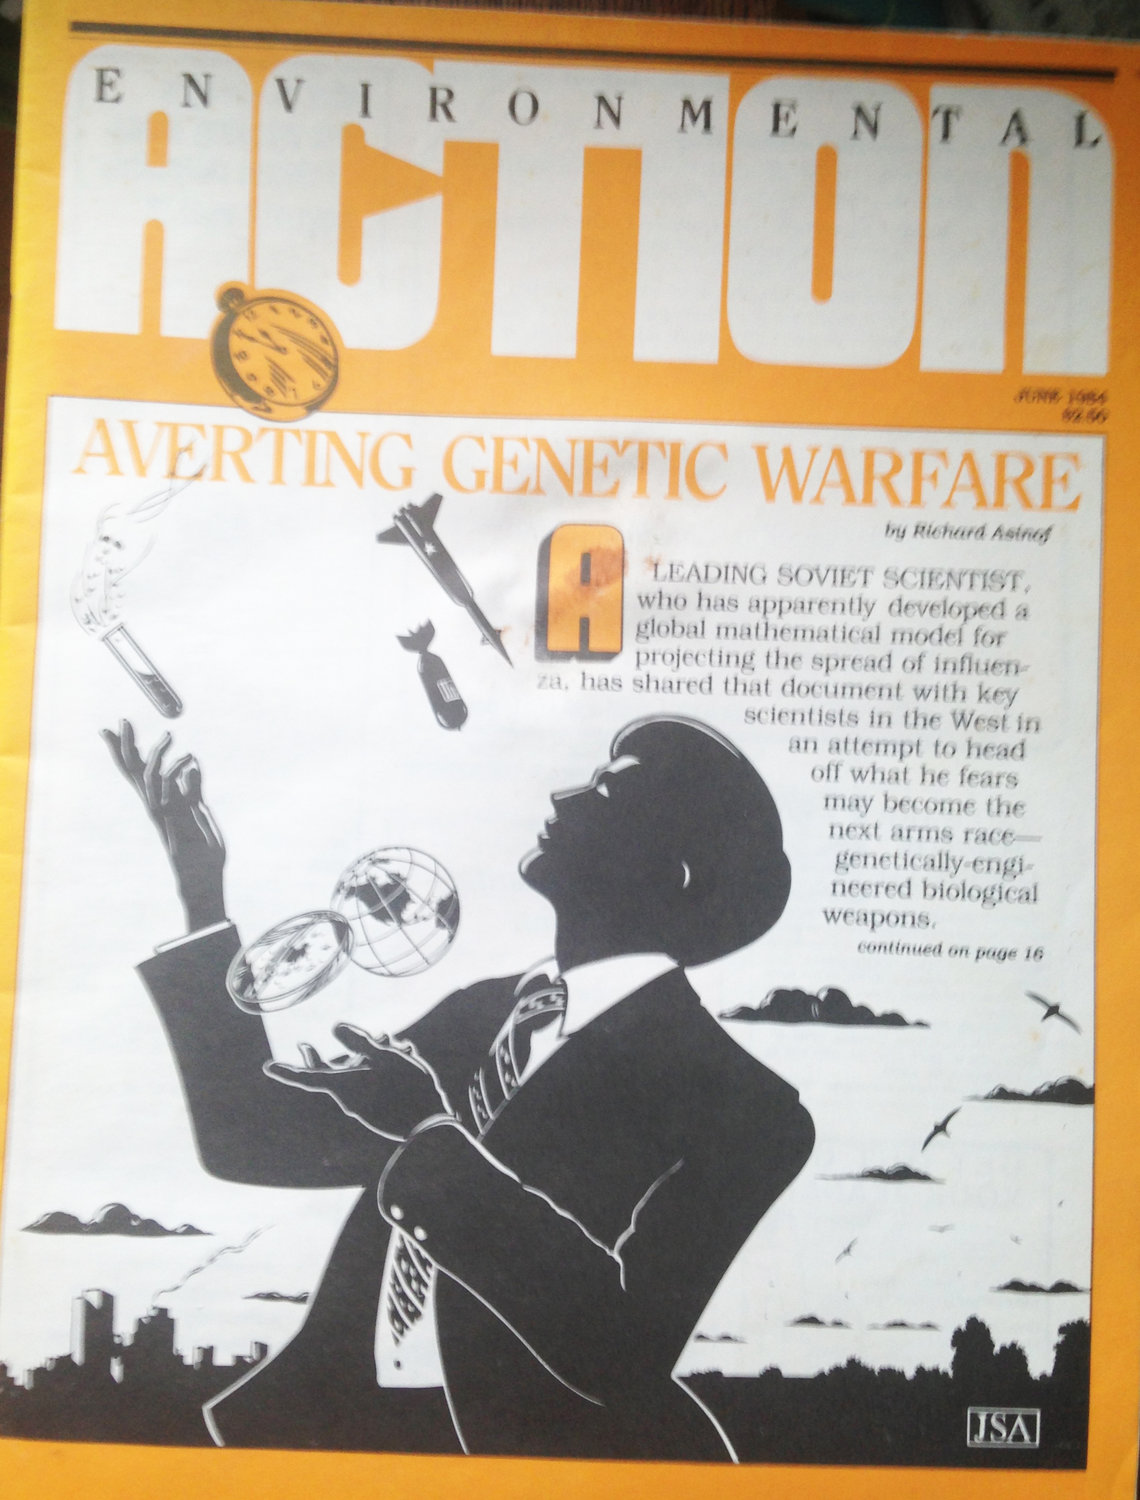 The cover of Environmental Action Magazine in May of 1984, reporting on the efforts to avert biological warfare, triggered by a Soviet scientist, Leonid Rvachev, who sent warning letters about how his mathematical modeling were potentially being misused to track biological agents in an attack.